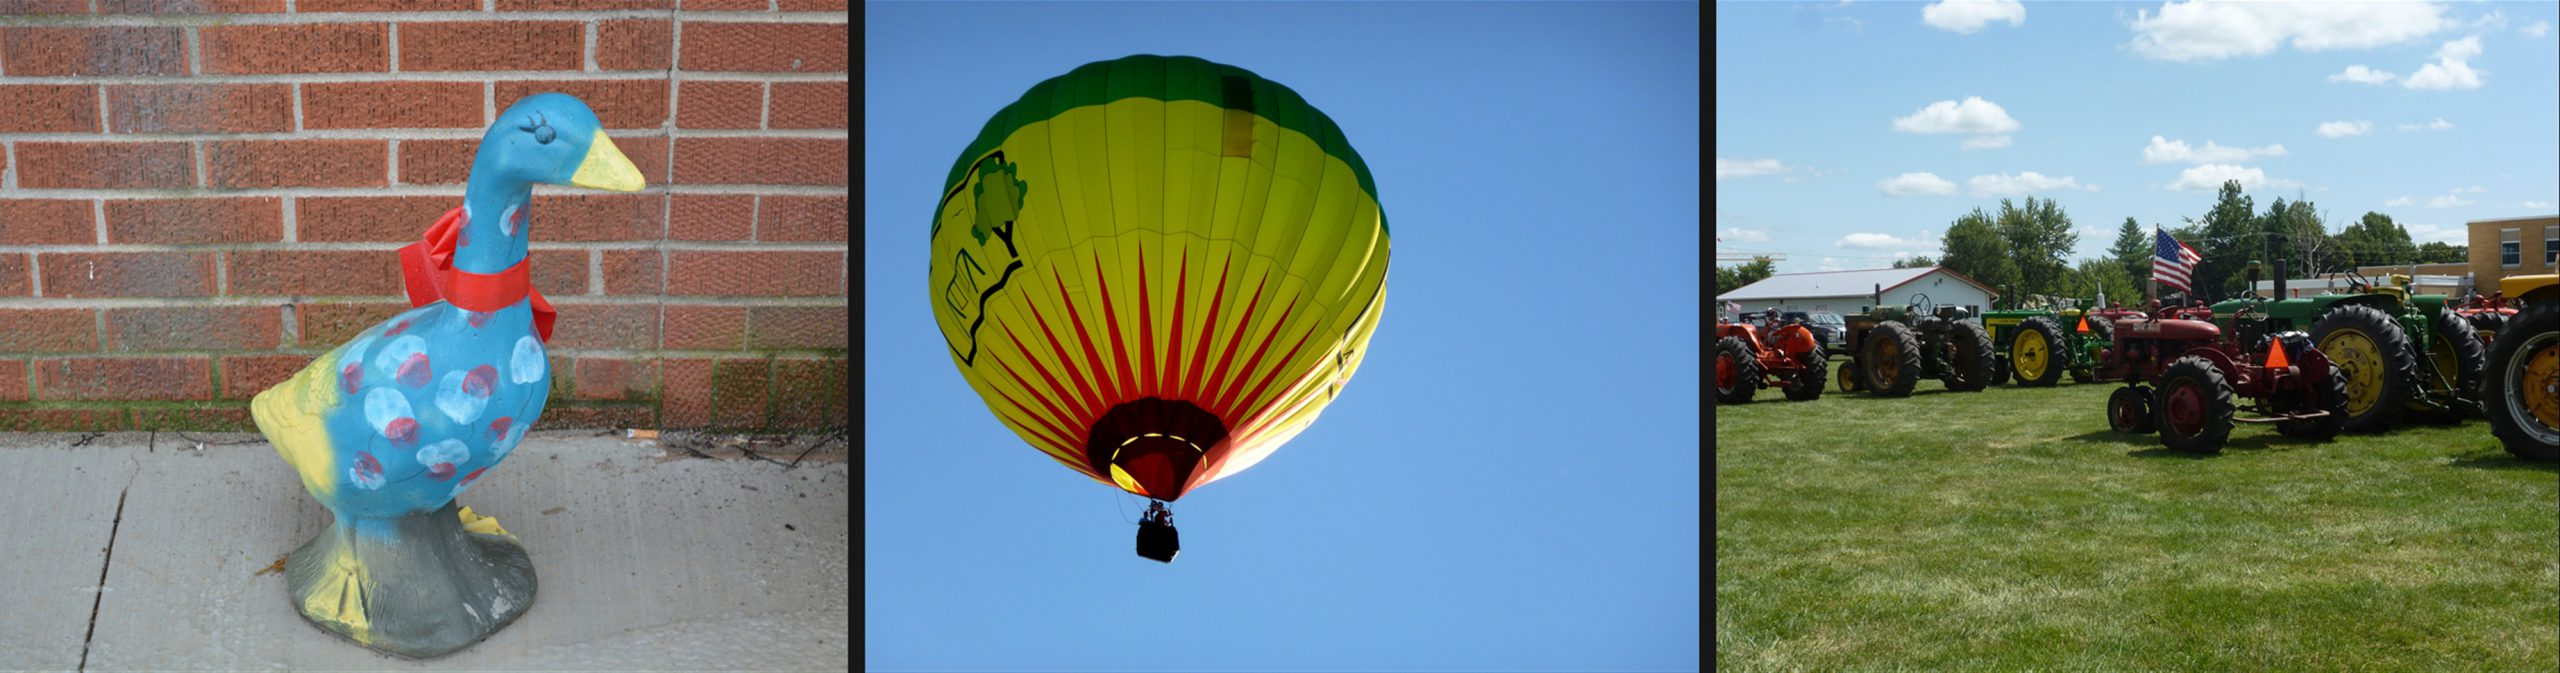 Cullom Illinois Attractions: Gaudy Geese, Hot Air Balloon Festival, and Tractors at Festival